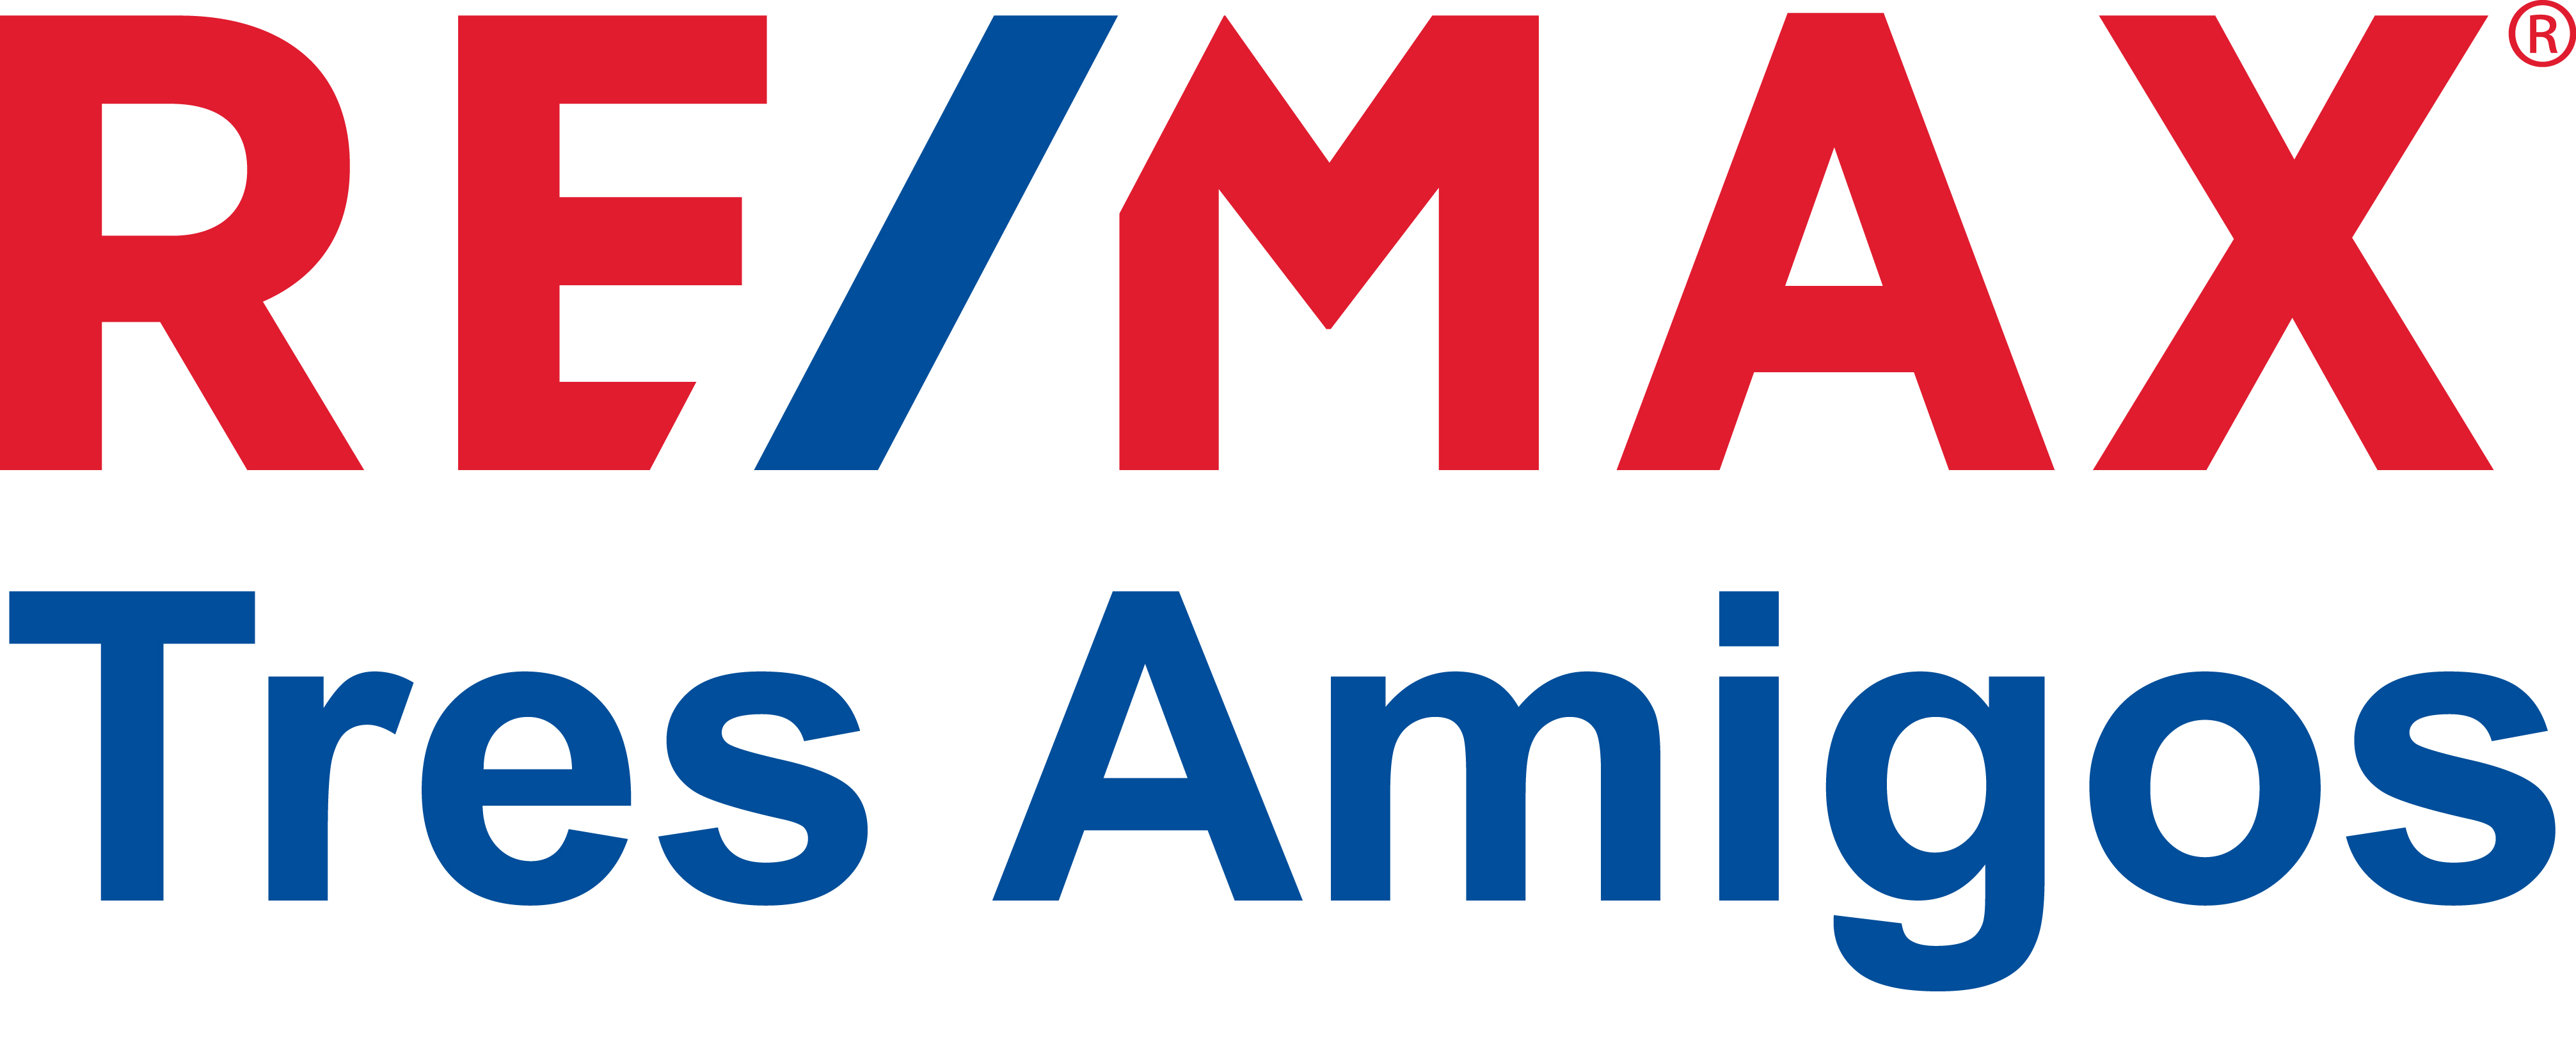 Costa Rica Real Estate - Re/Max Tres Amigos